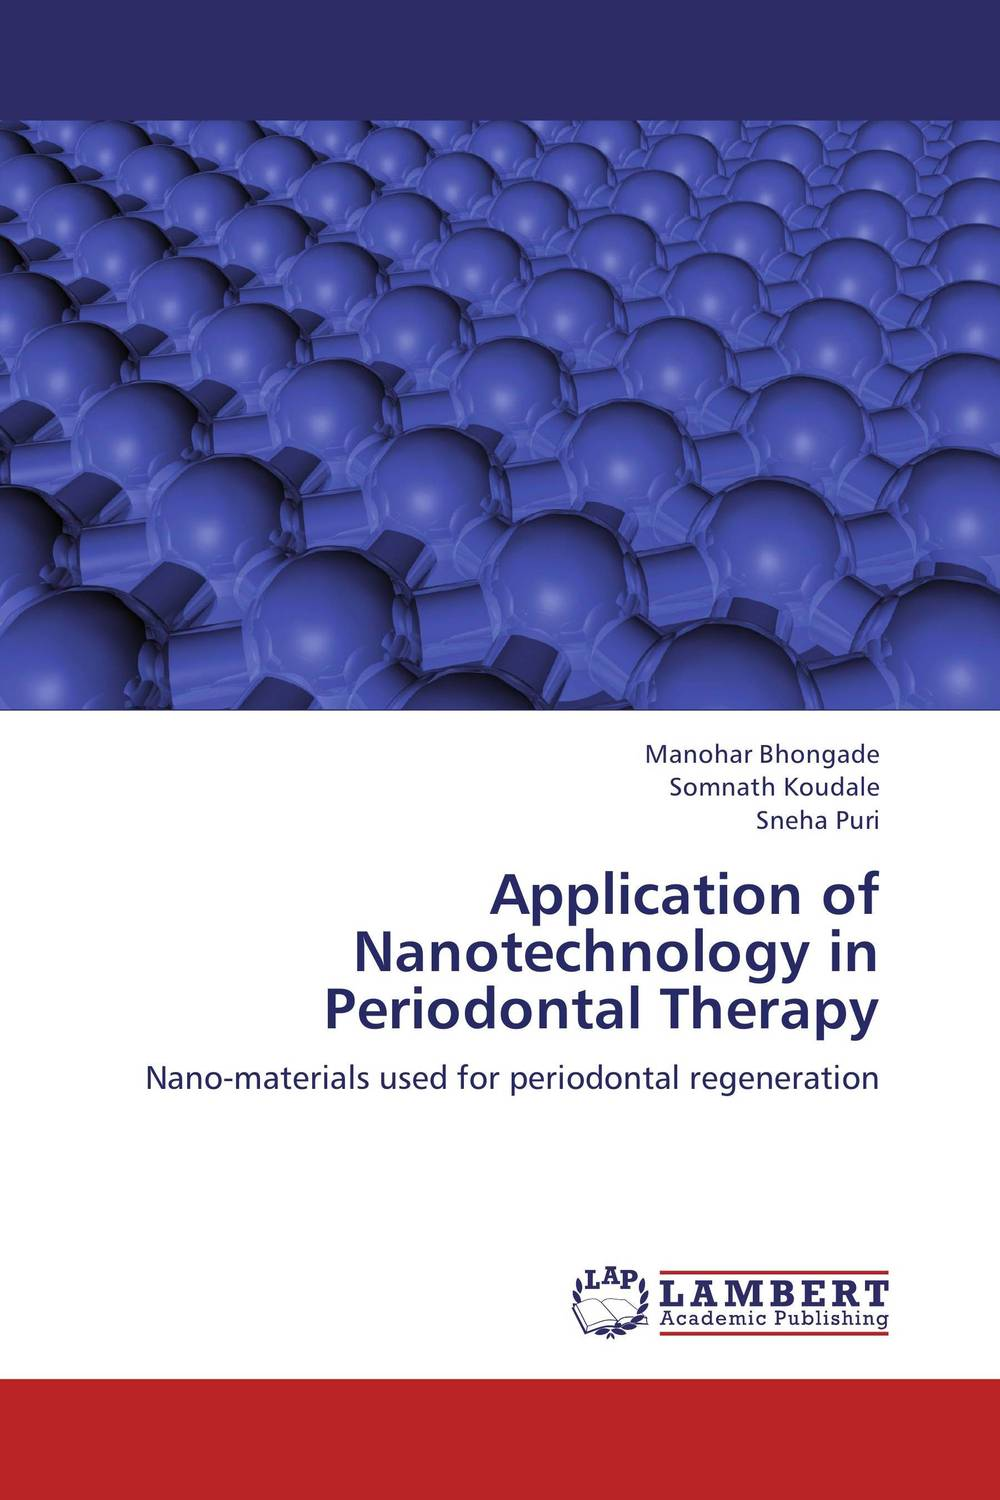 Application of Nanotechnology in Periodontal Therapy the application of global ethics to solve local improprieties